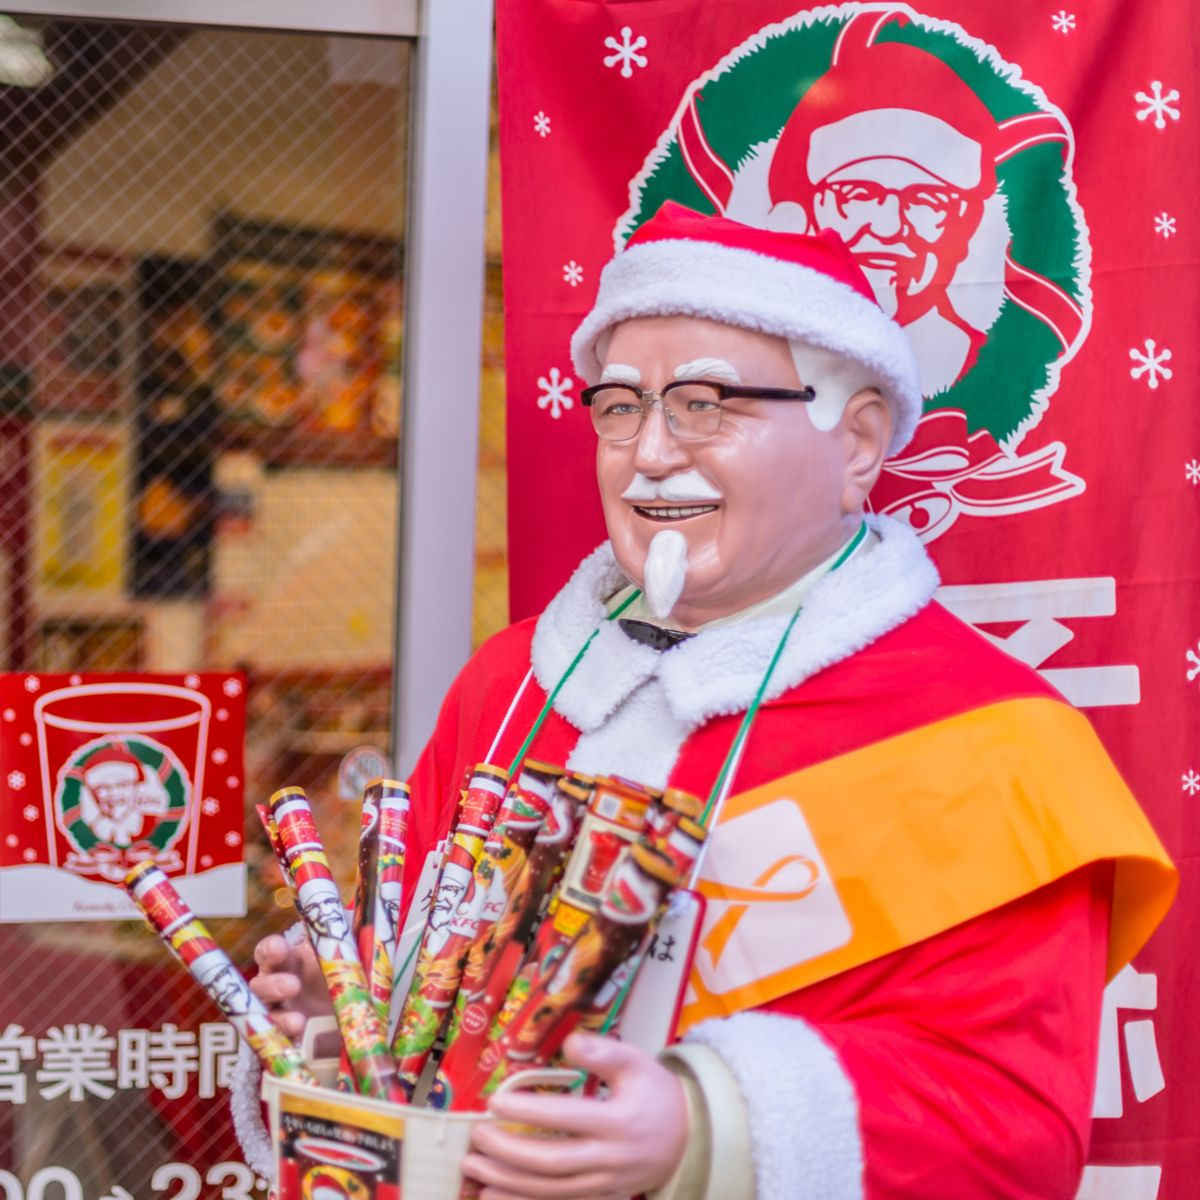 Japan's Christmas tradition may surprise you. Since the